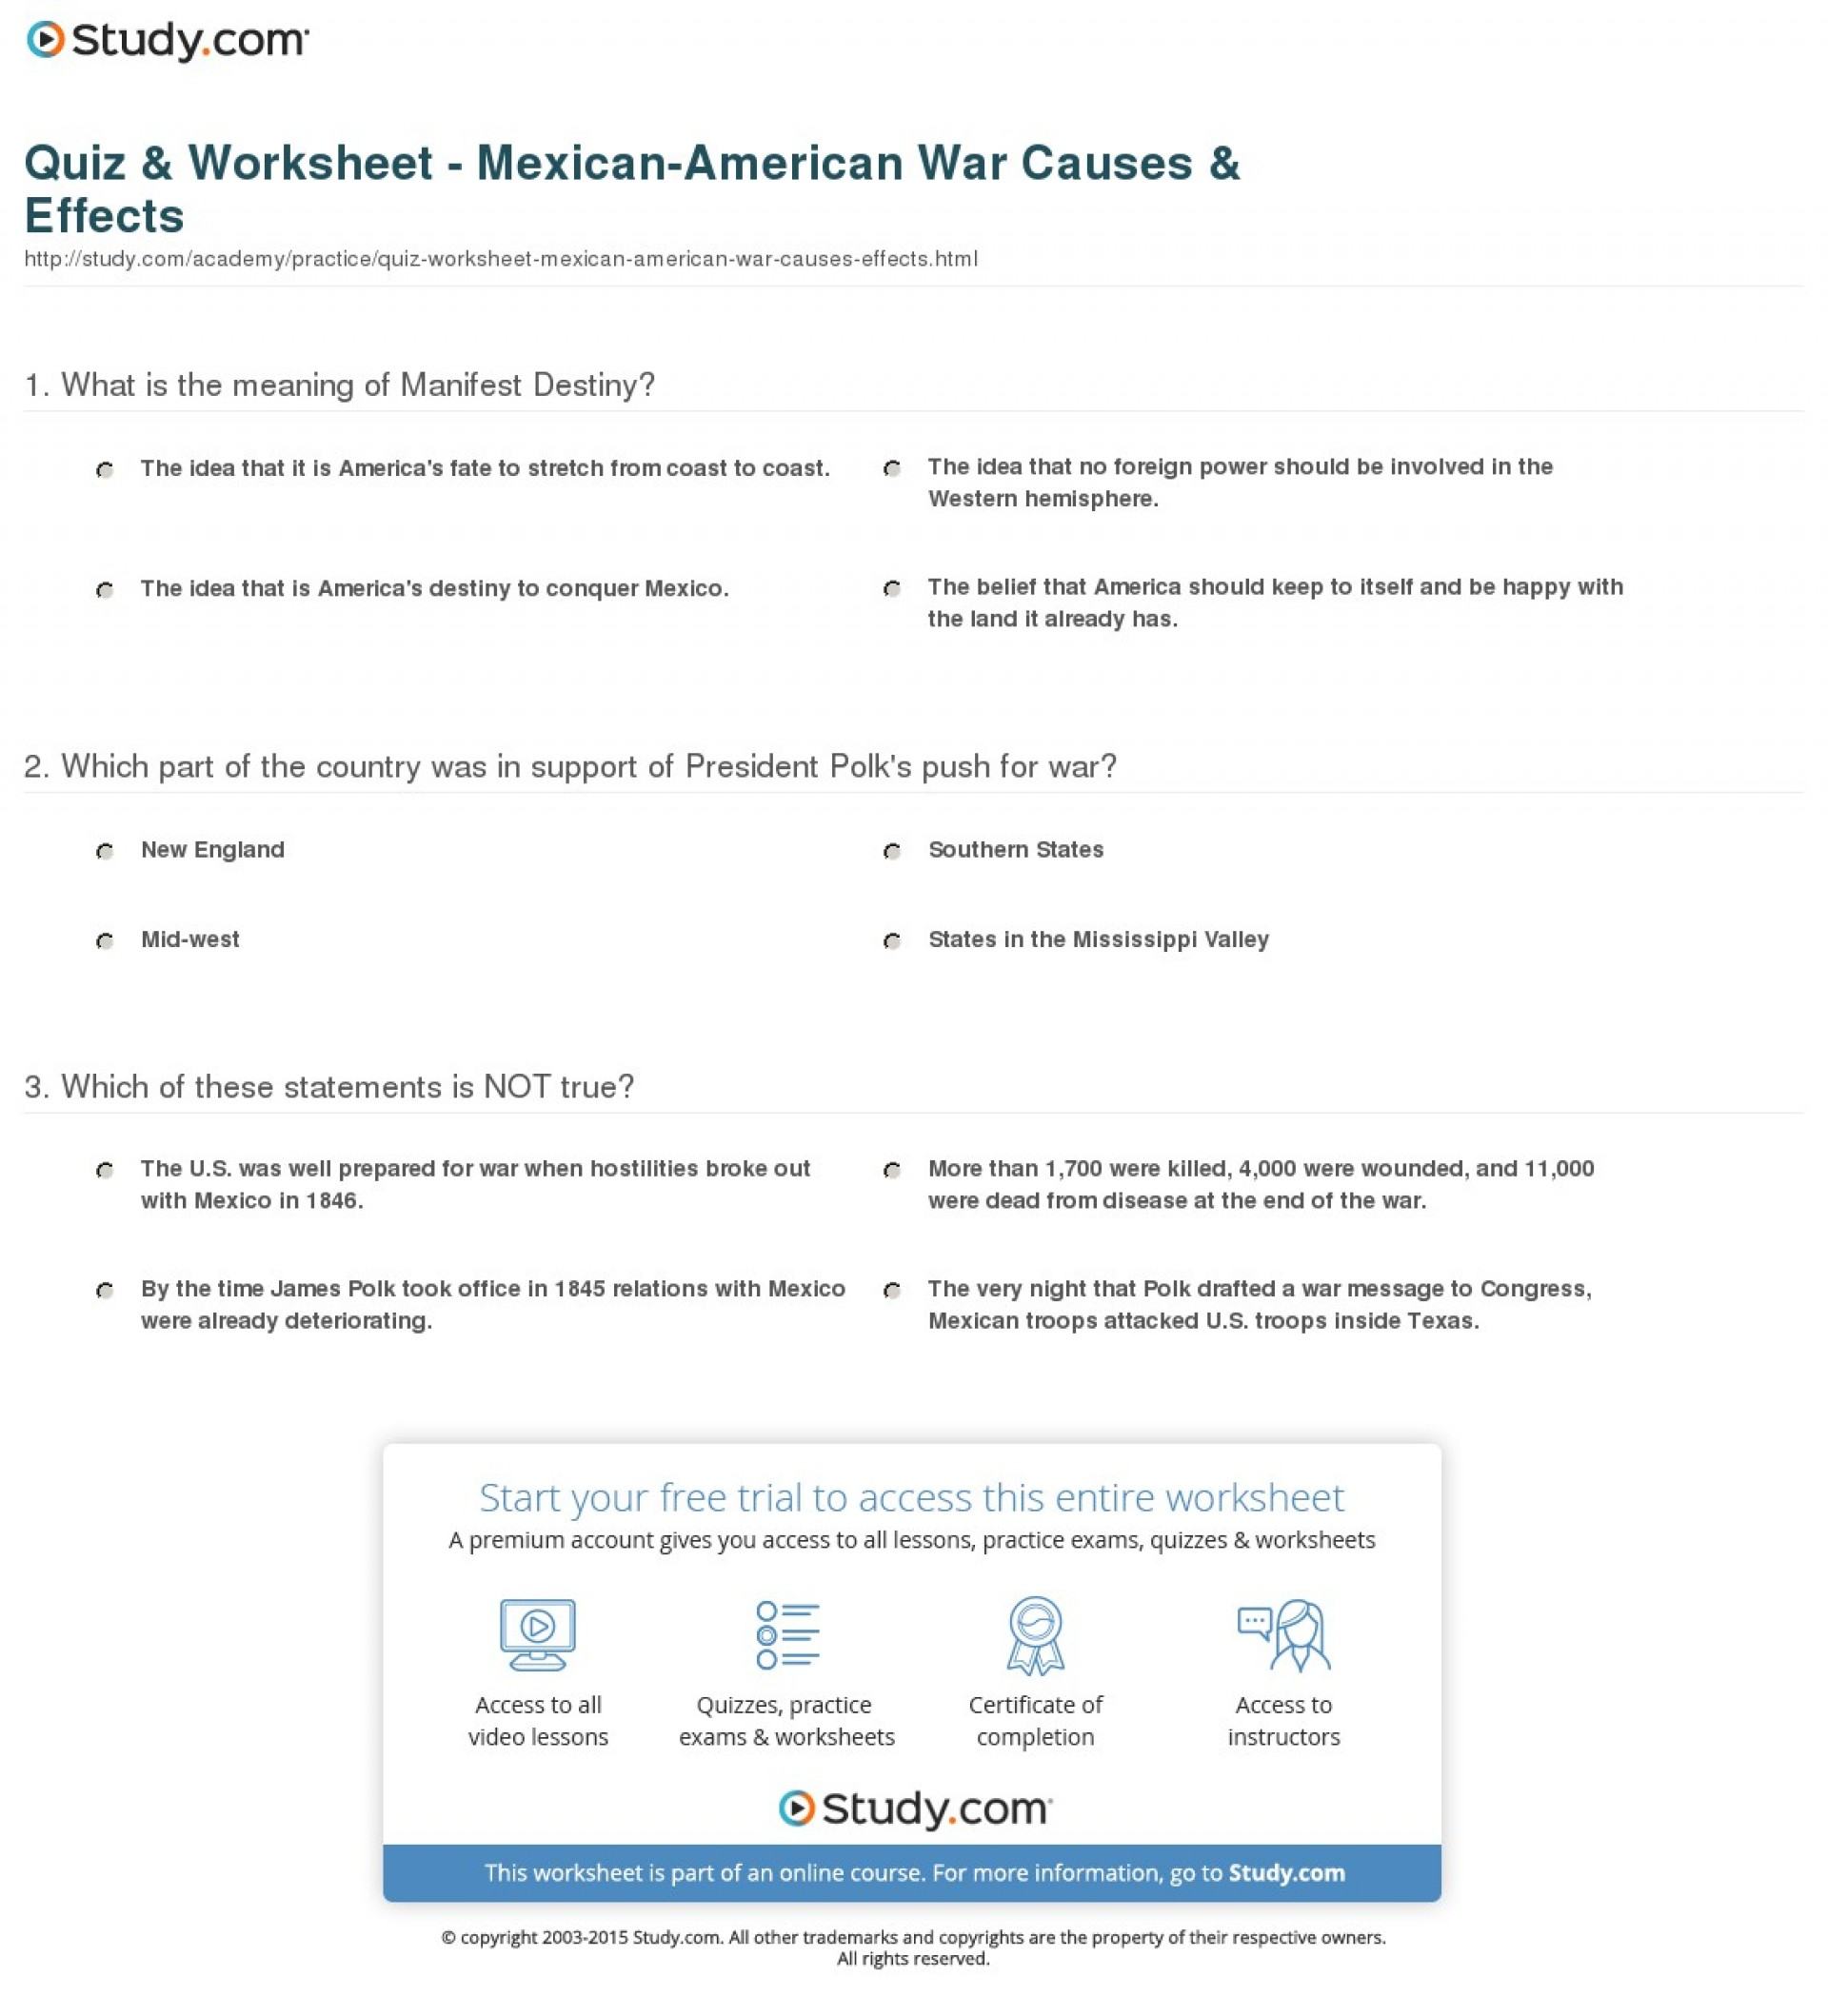 013 Quiz Worksheet Mexican American War Causes Effects Manifest Destiny Essay Impressive Prompt Outline Introduction 1920